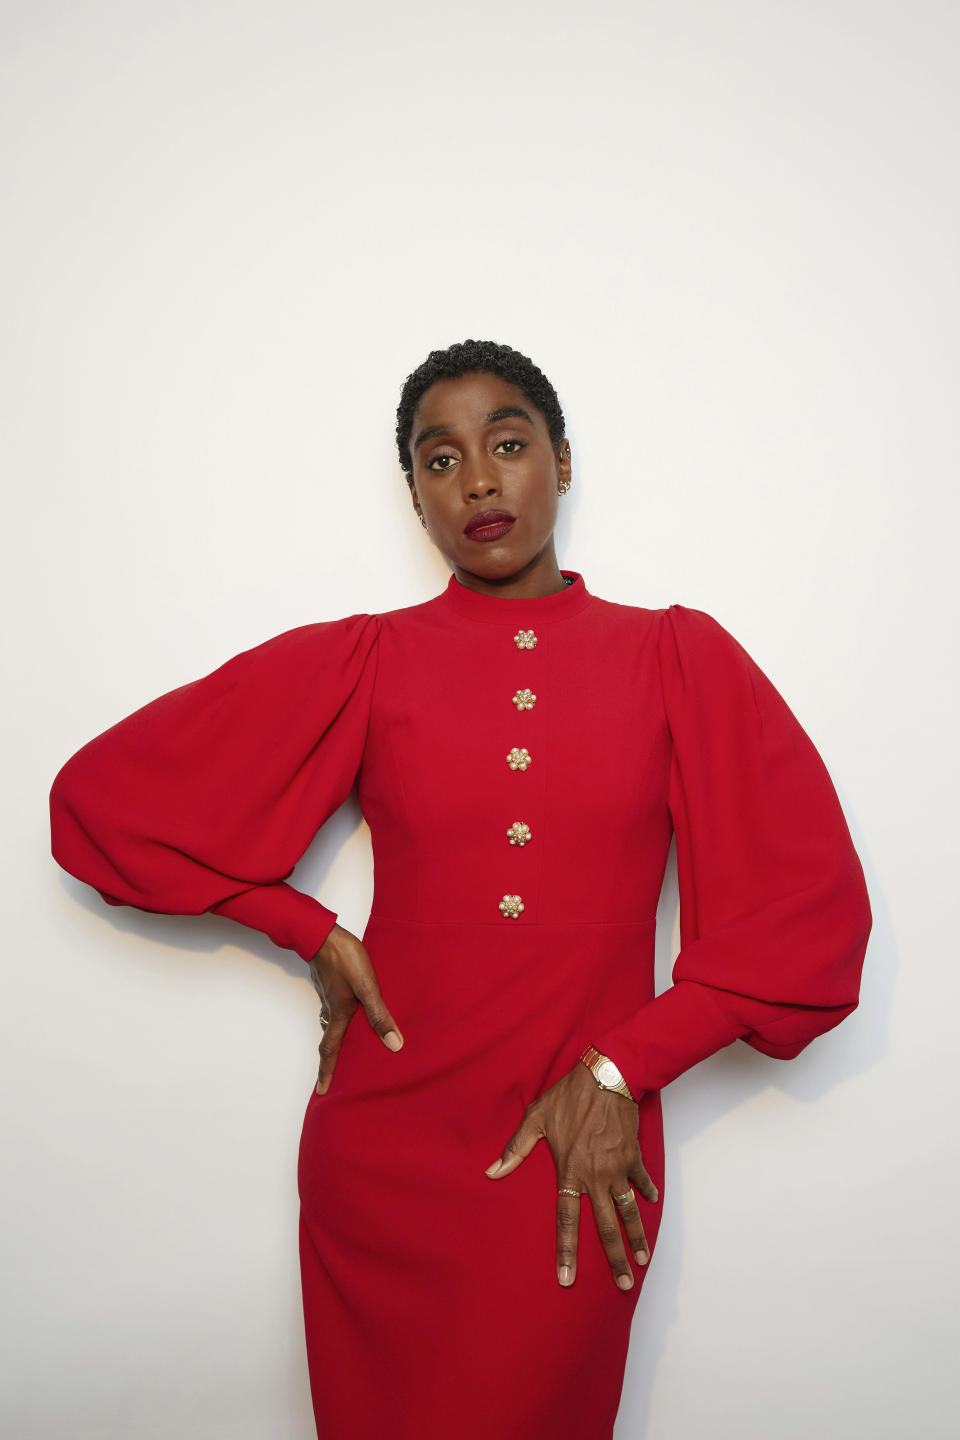 """Lashana Lynch poses for a portrait to promote the film """"No Time to Die"""" on Sunday, Oct. 3, 2021, in New York. (Photo by Taylor Jewell/Invision/AP)"""